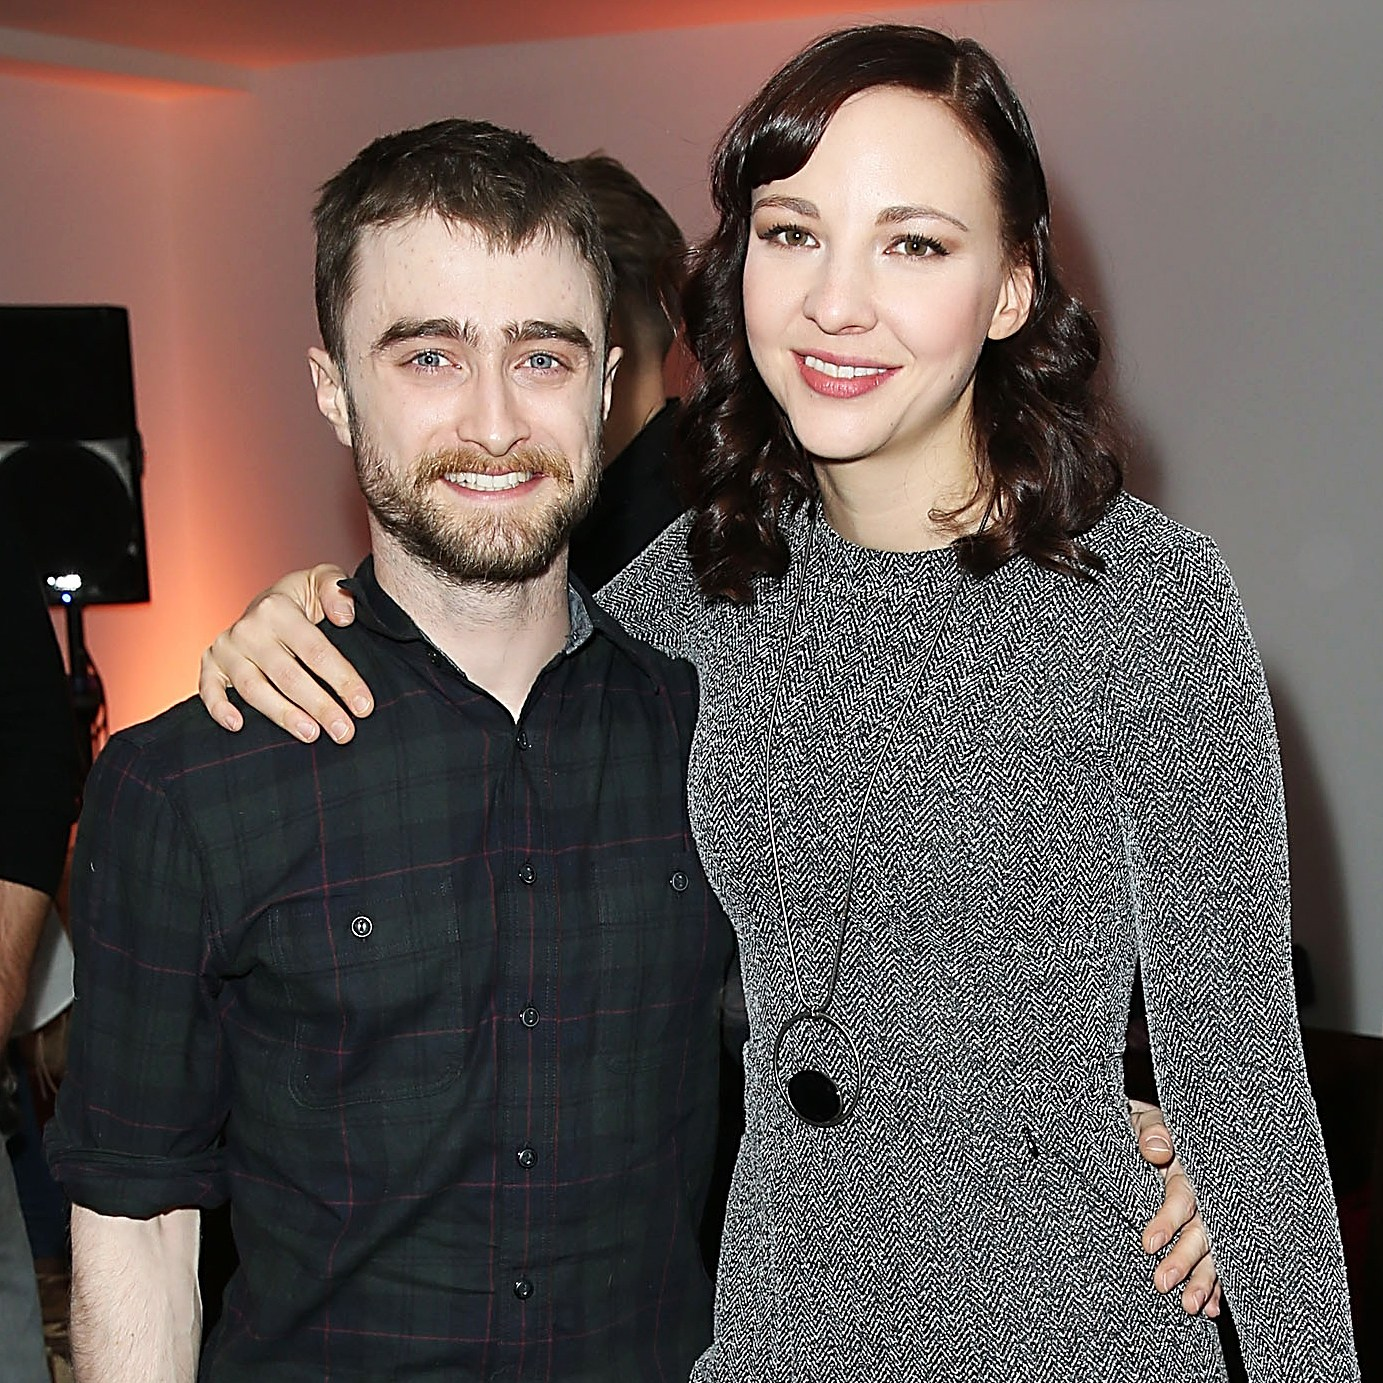 Daniel Radcliffe beard girlfriend